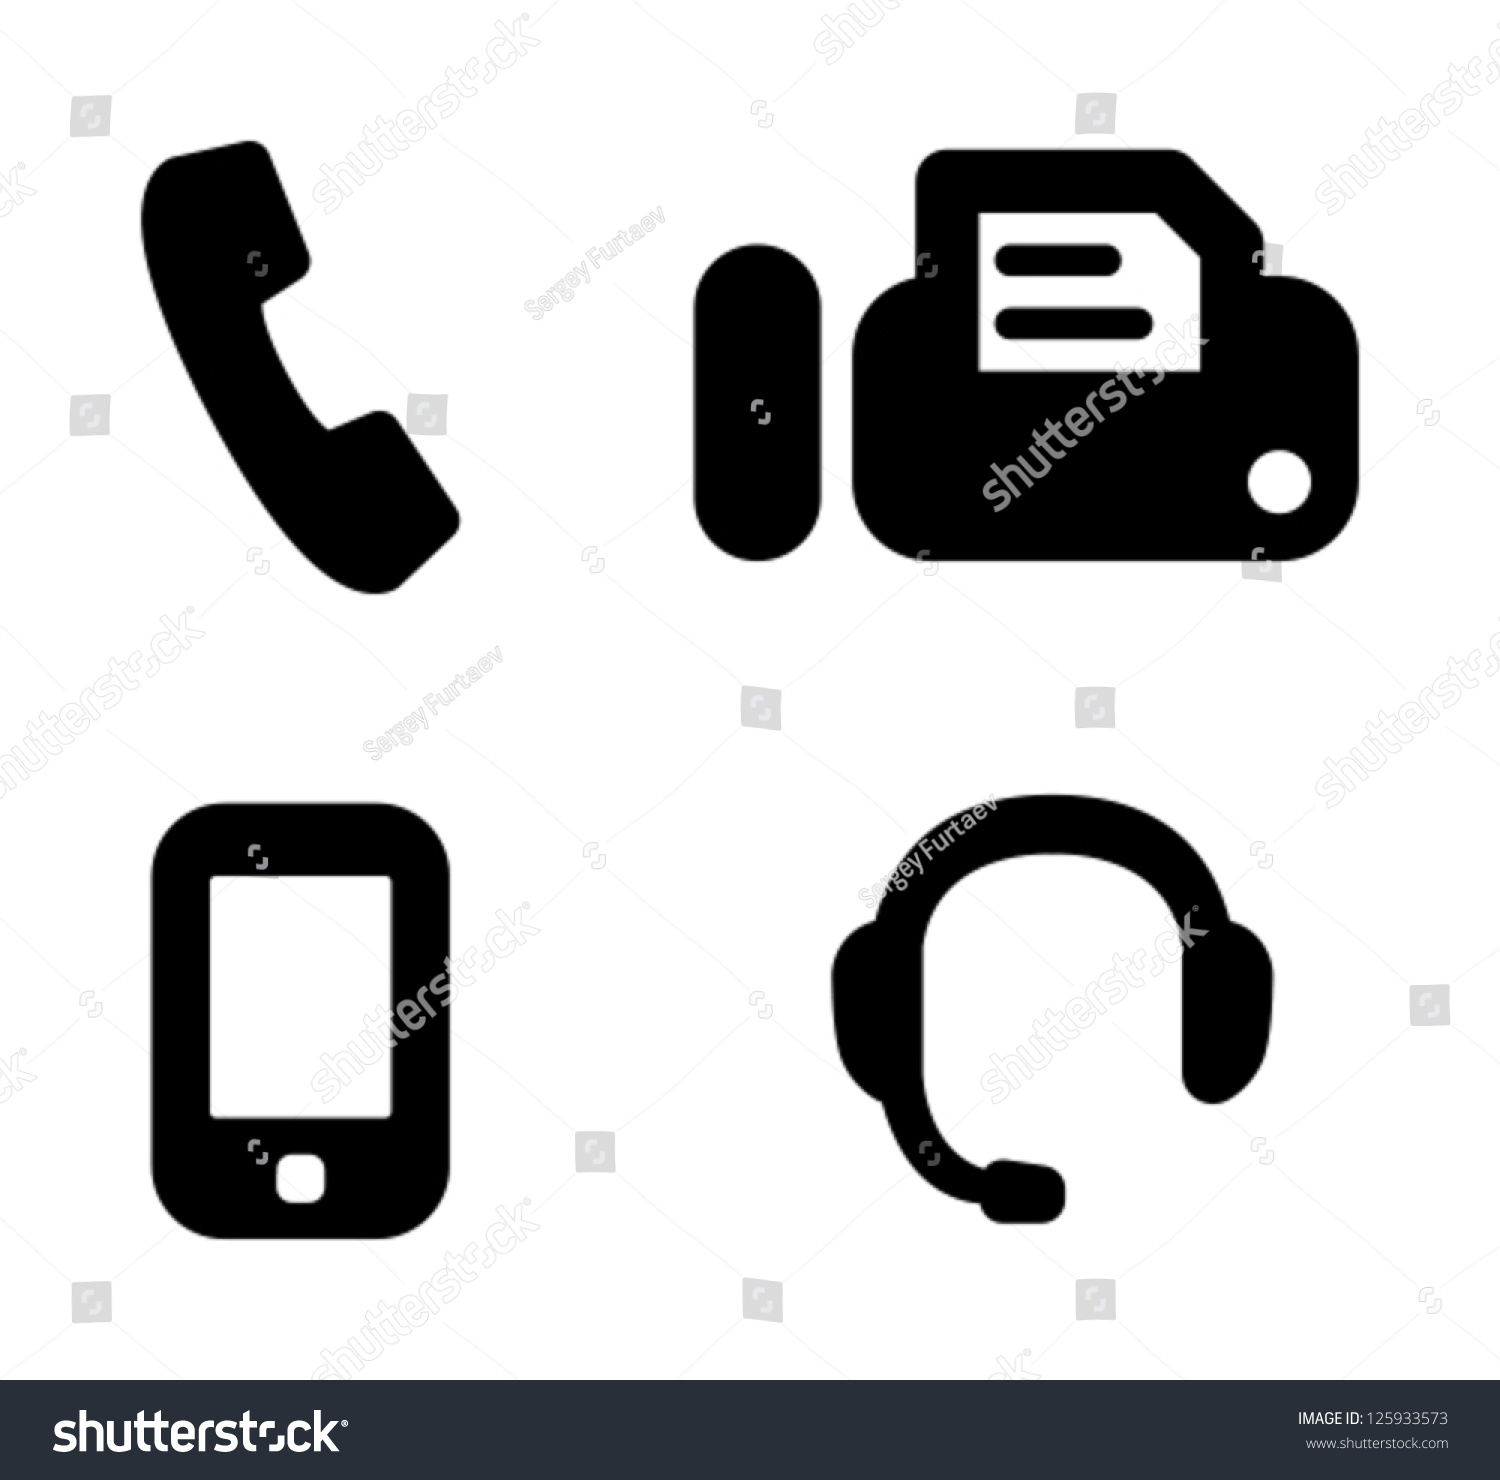 Telephone Symbol For Email Signature